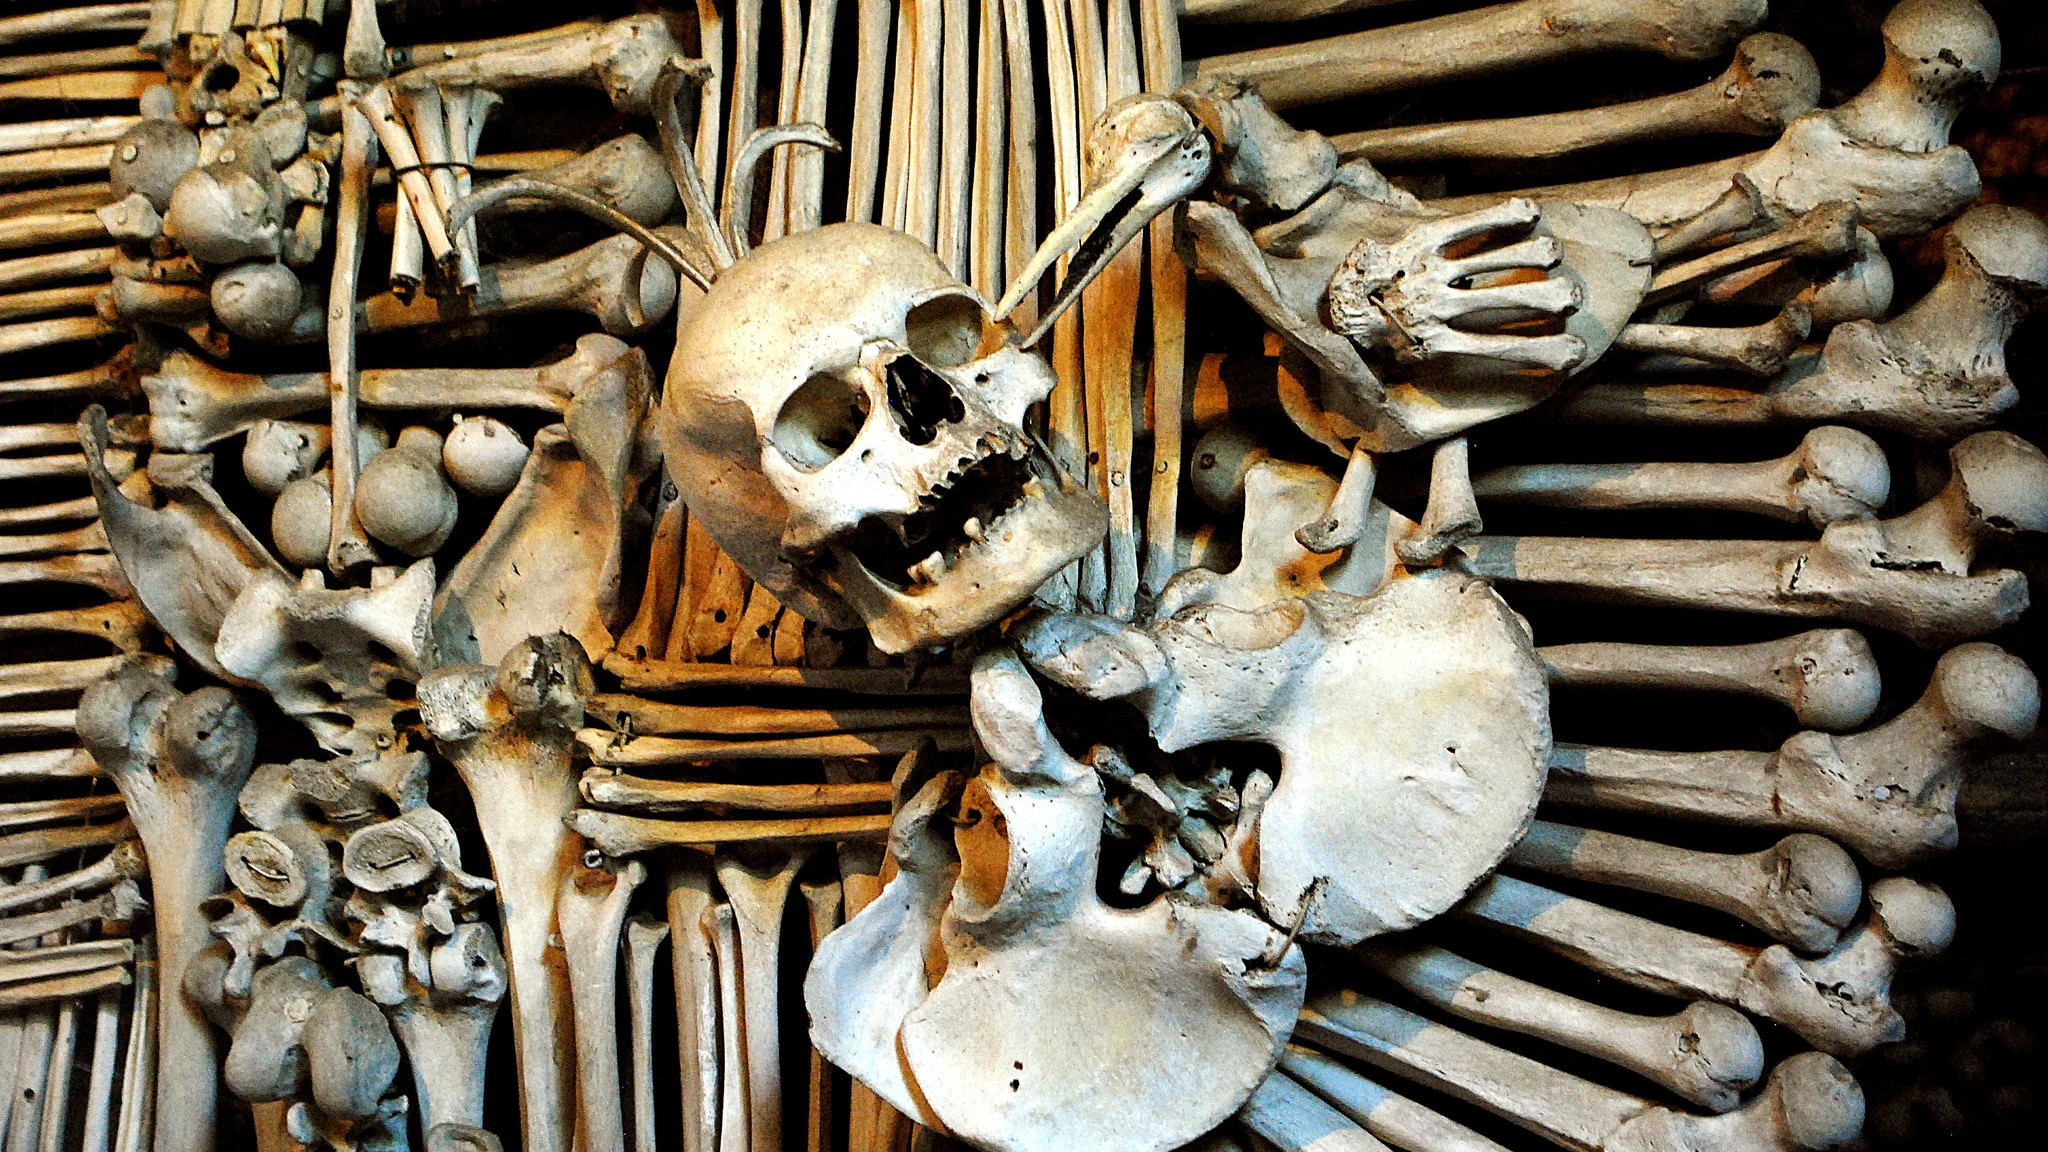 Tumblr Devolves into Literal Witchhunt Over Alleged Bone Thief